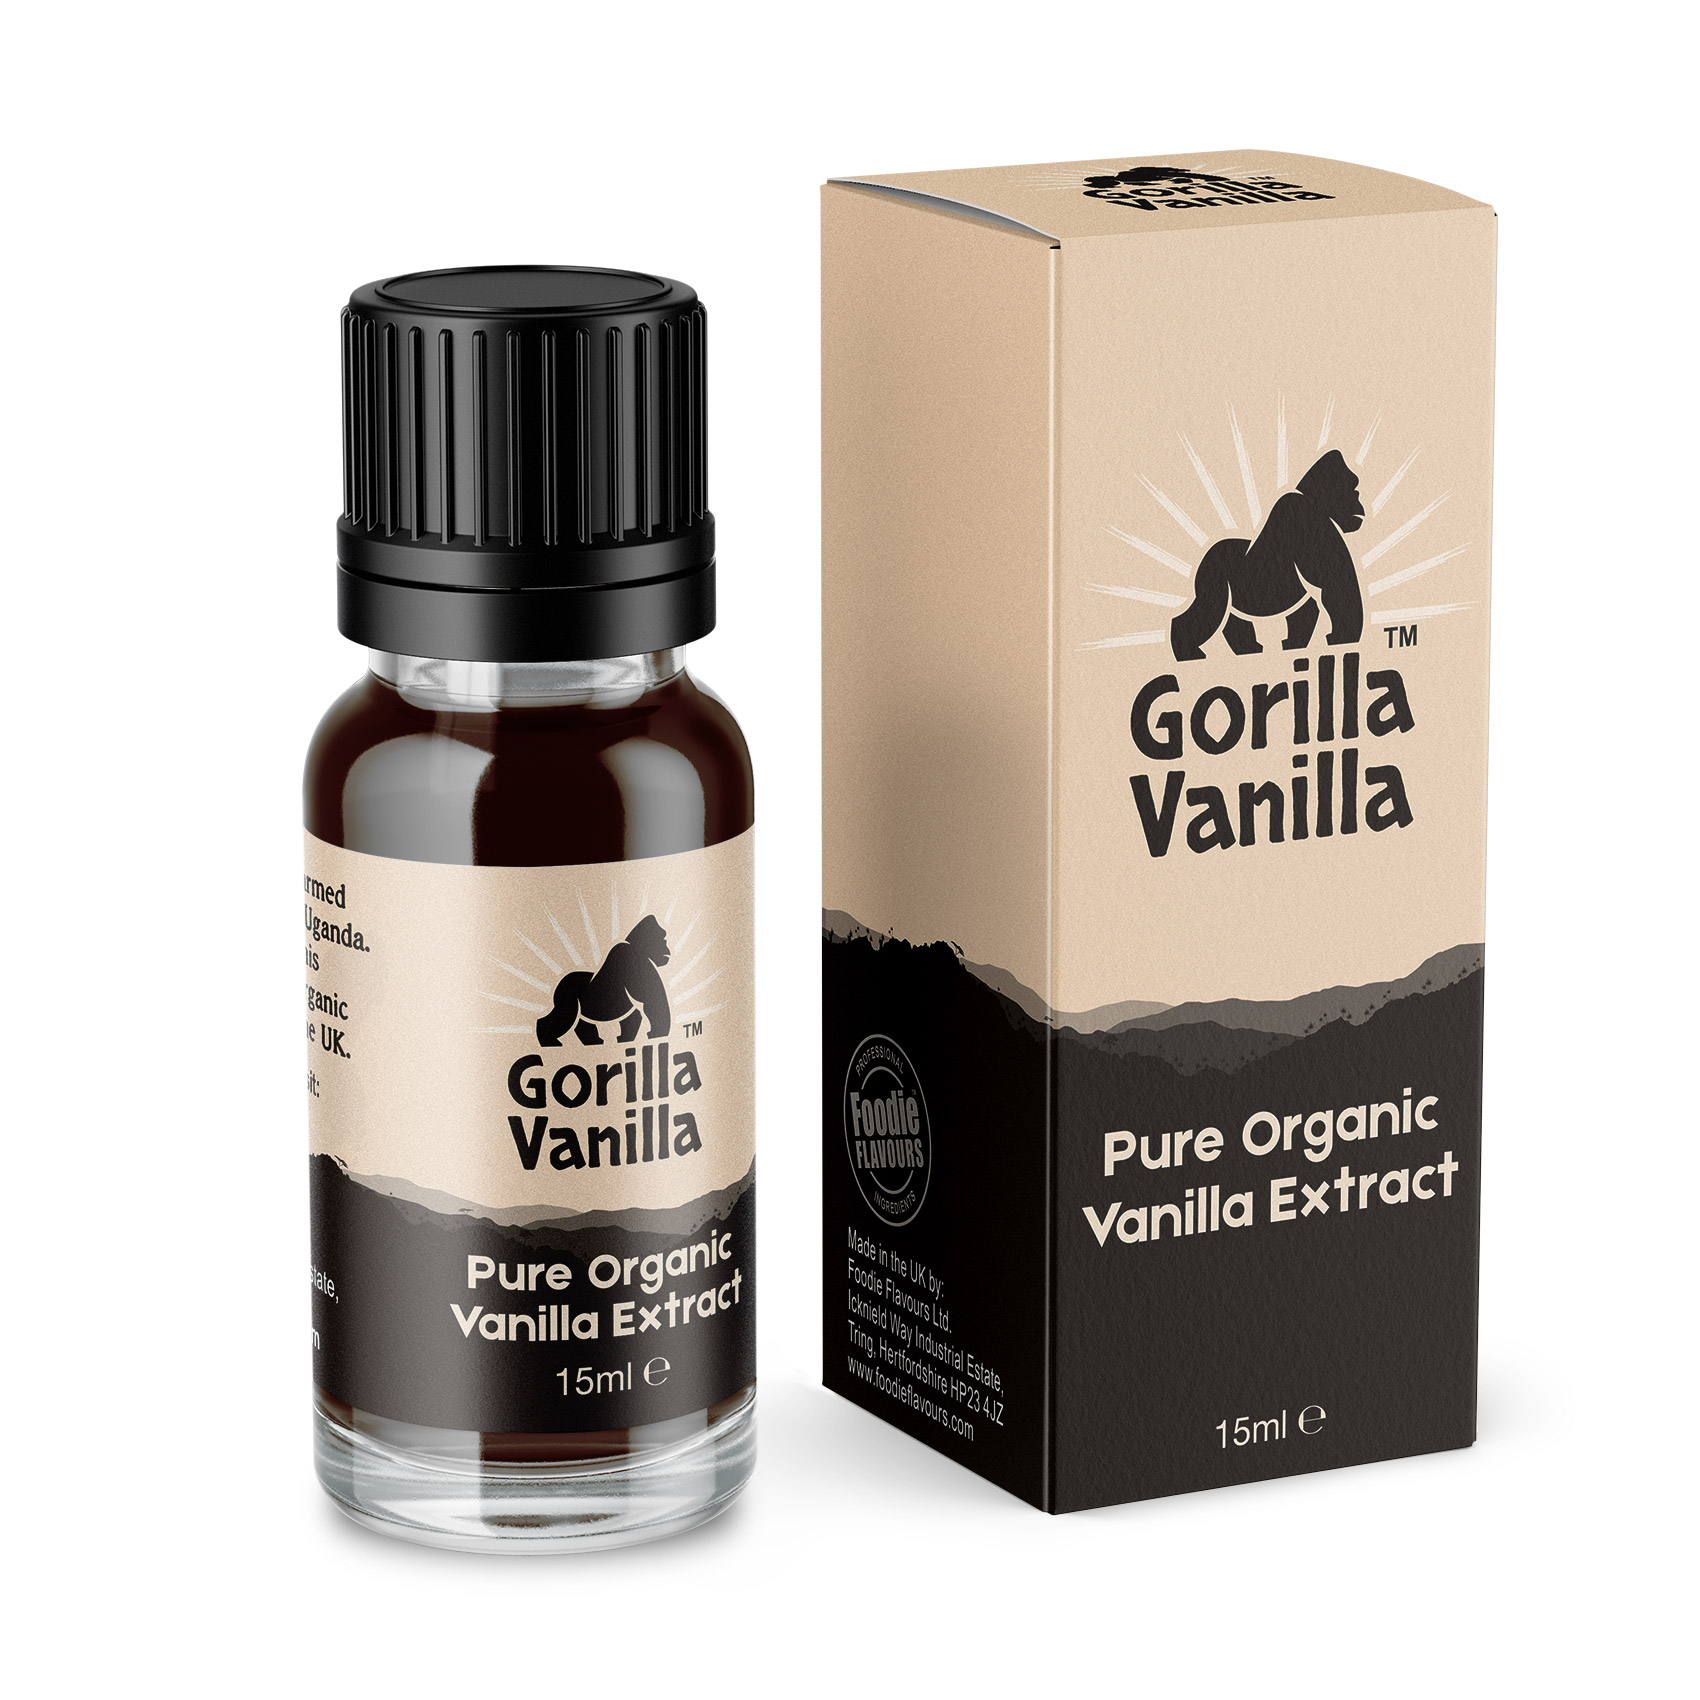 Gorilla Vanilla - Organic Vanilla Extract - 15ml Bottle with box